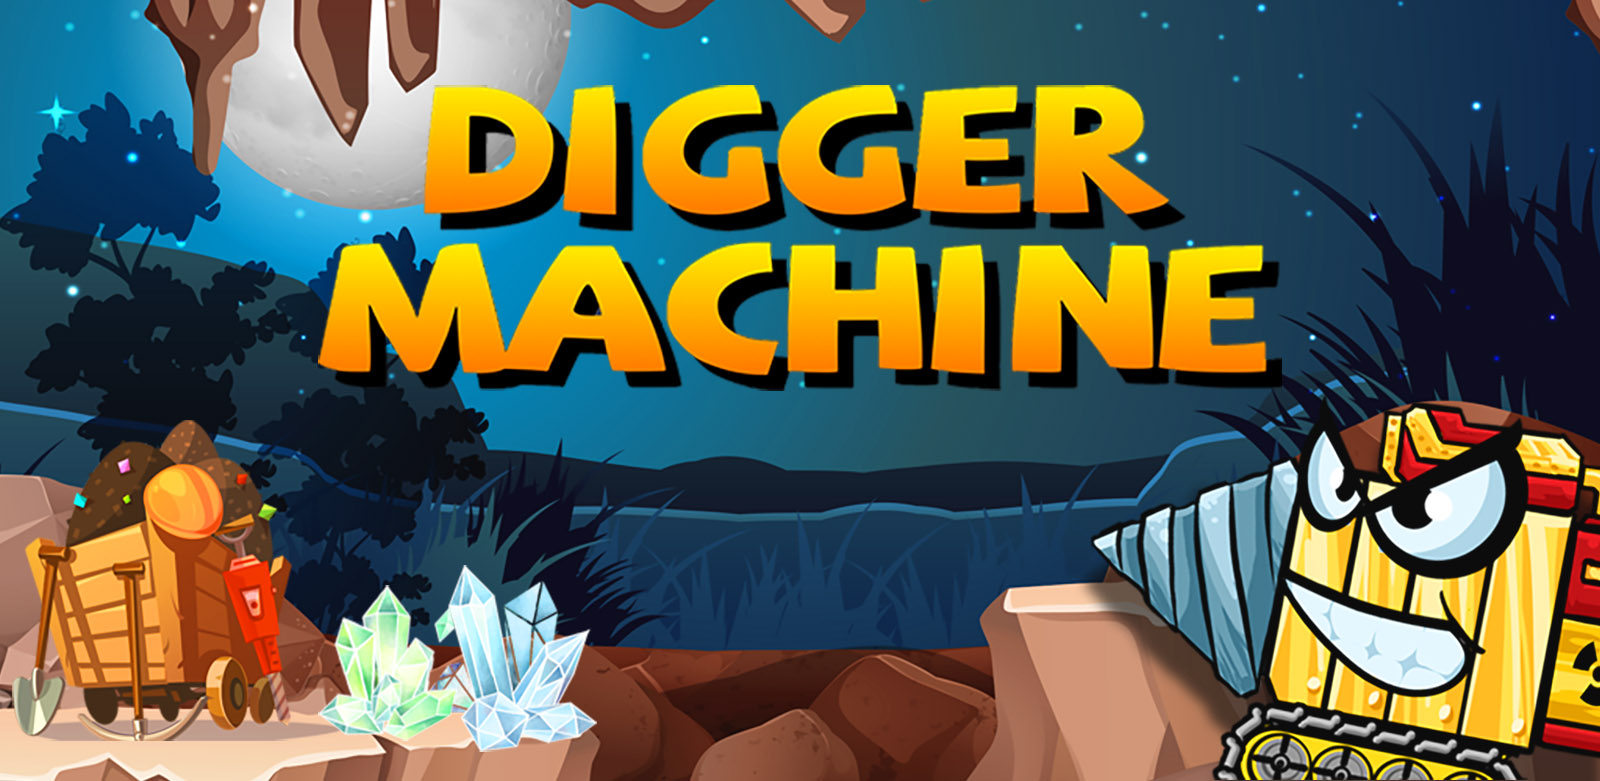 digger machine dig and find minerals featured image